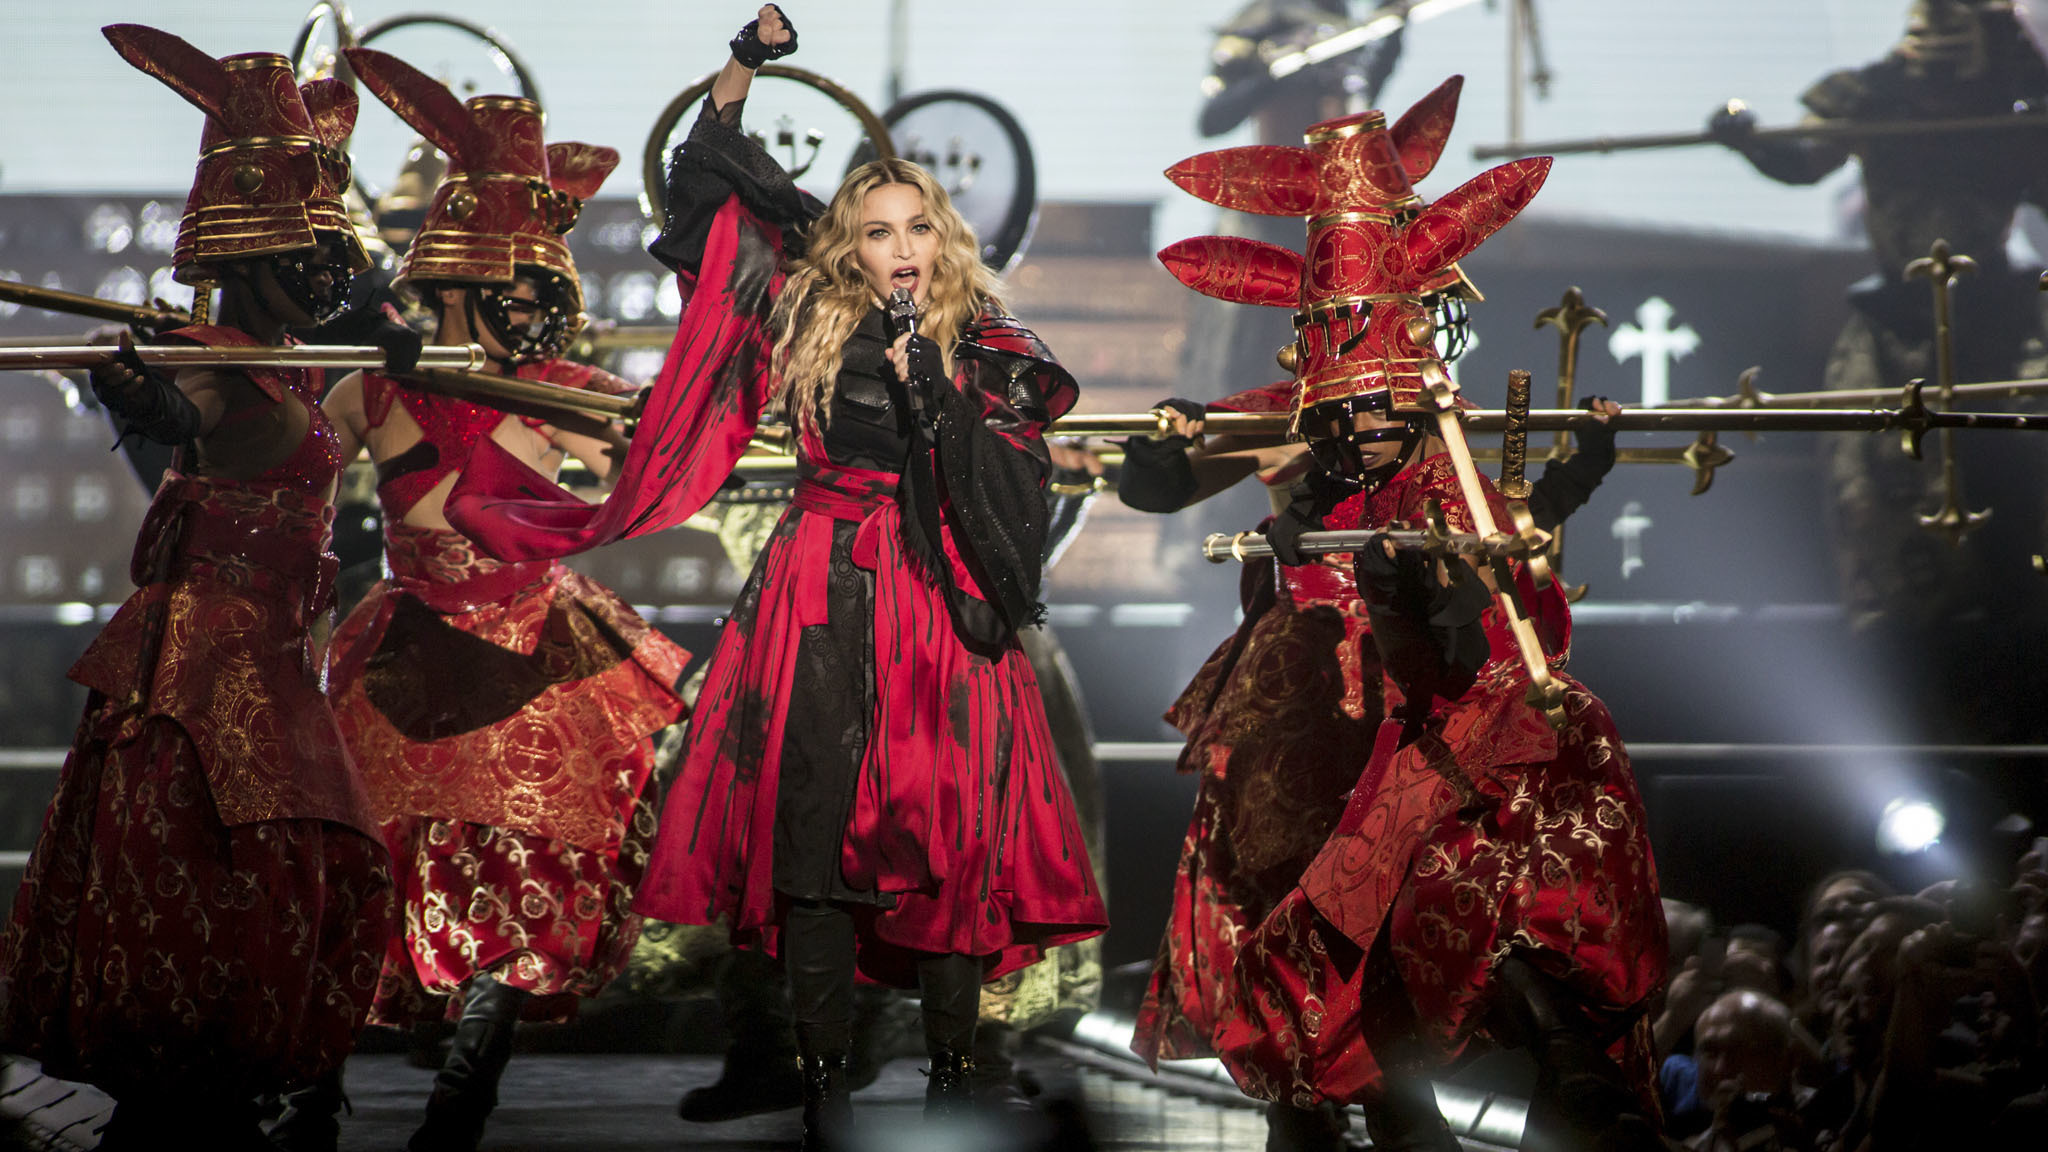 Madonna at the United Center